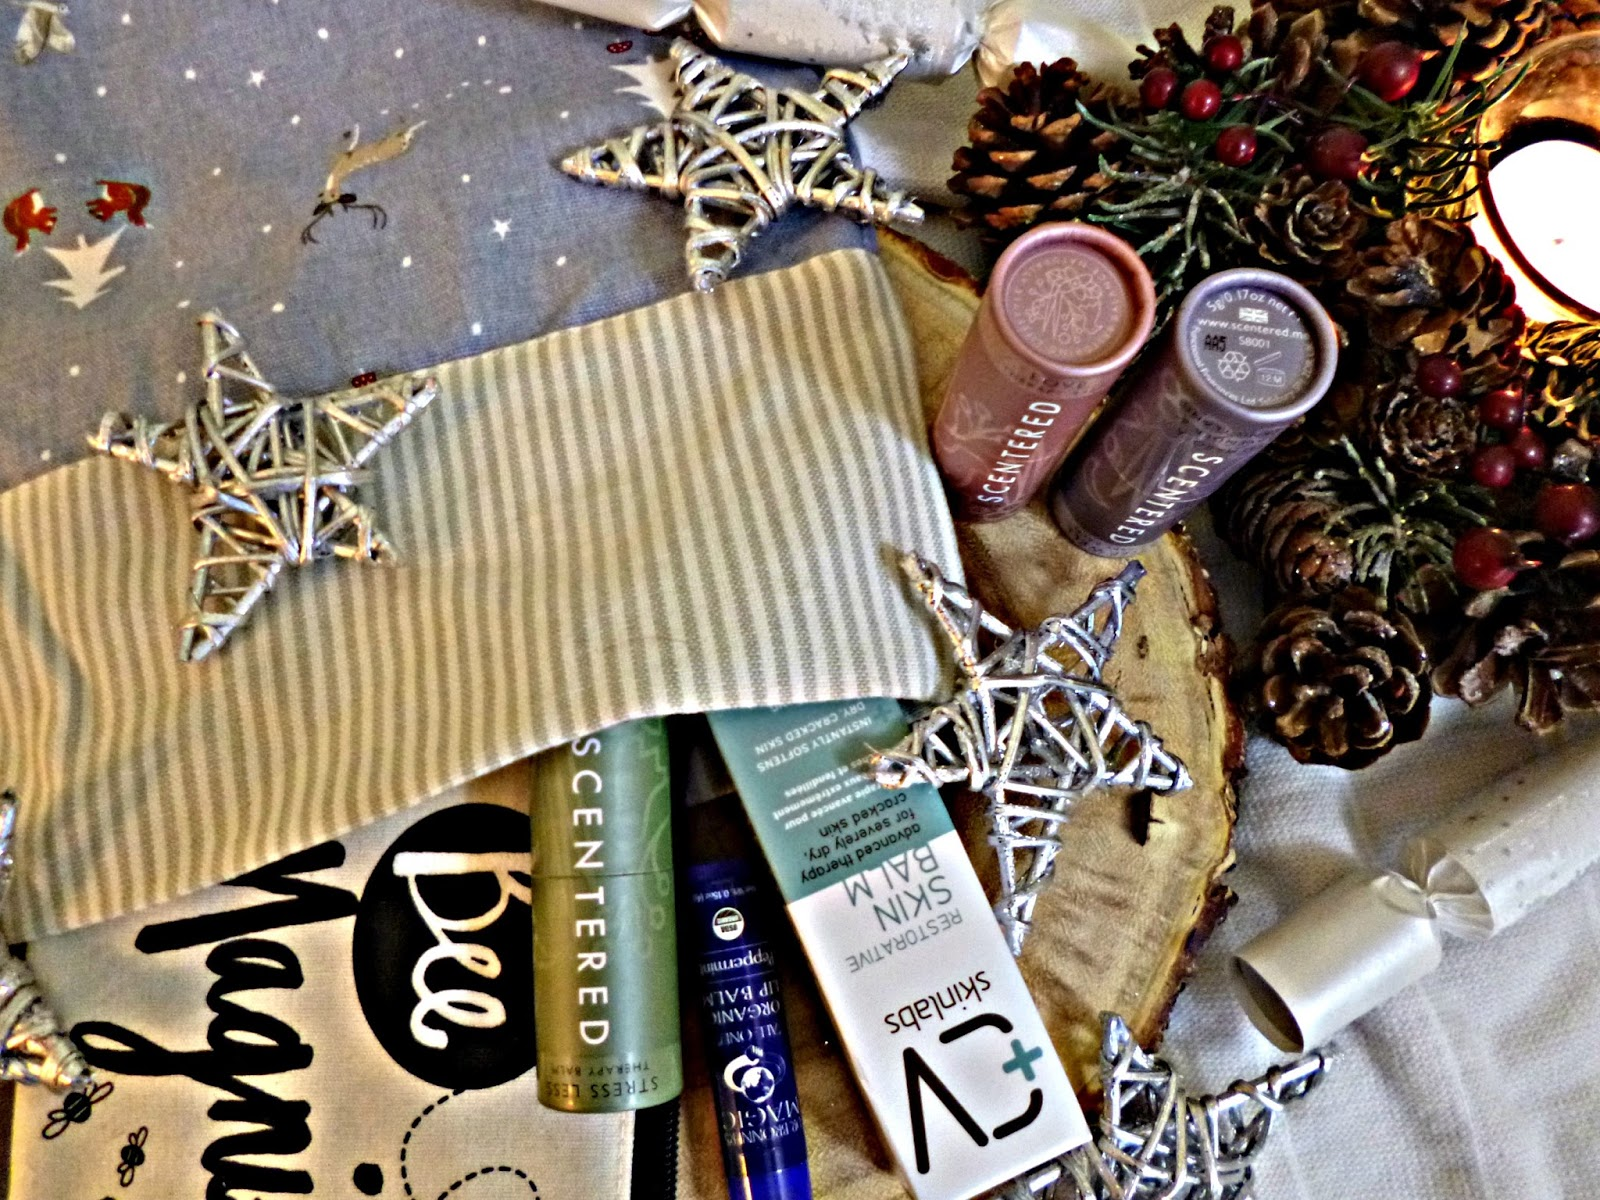 Green Beauty and lifestyle stocking filler ideas